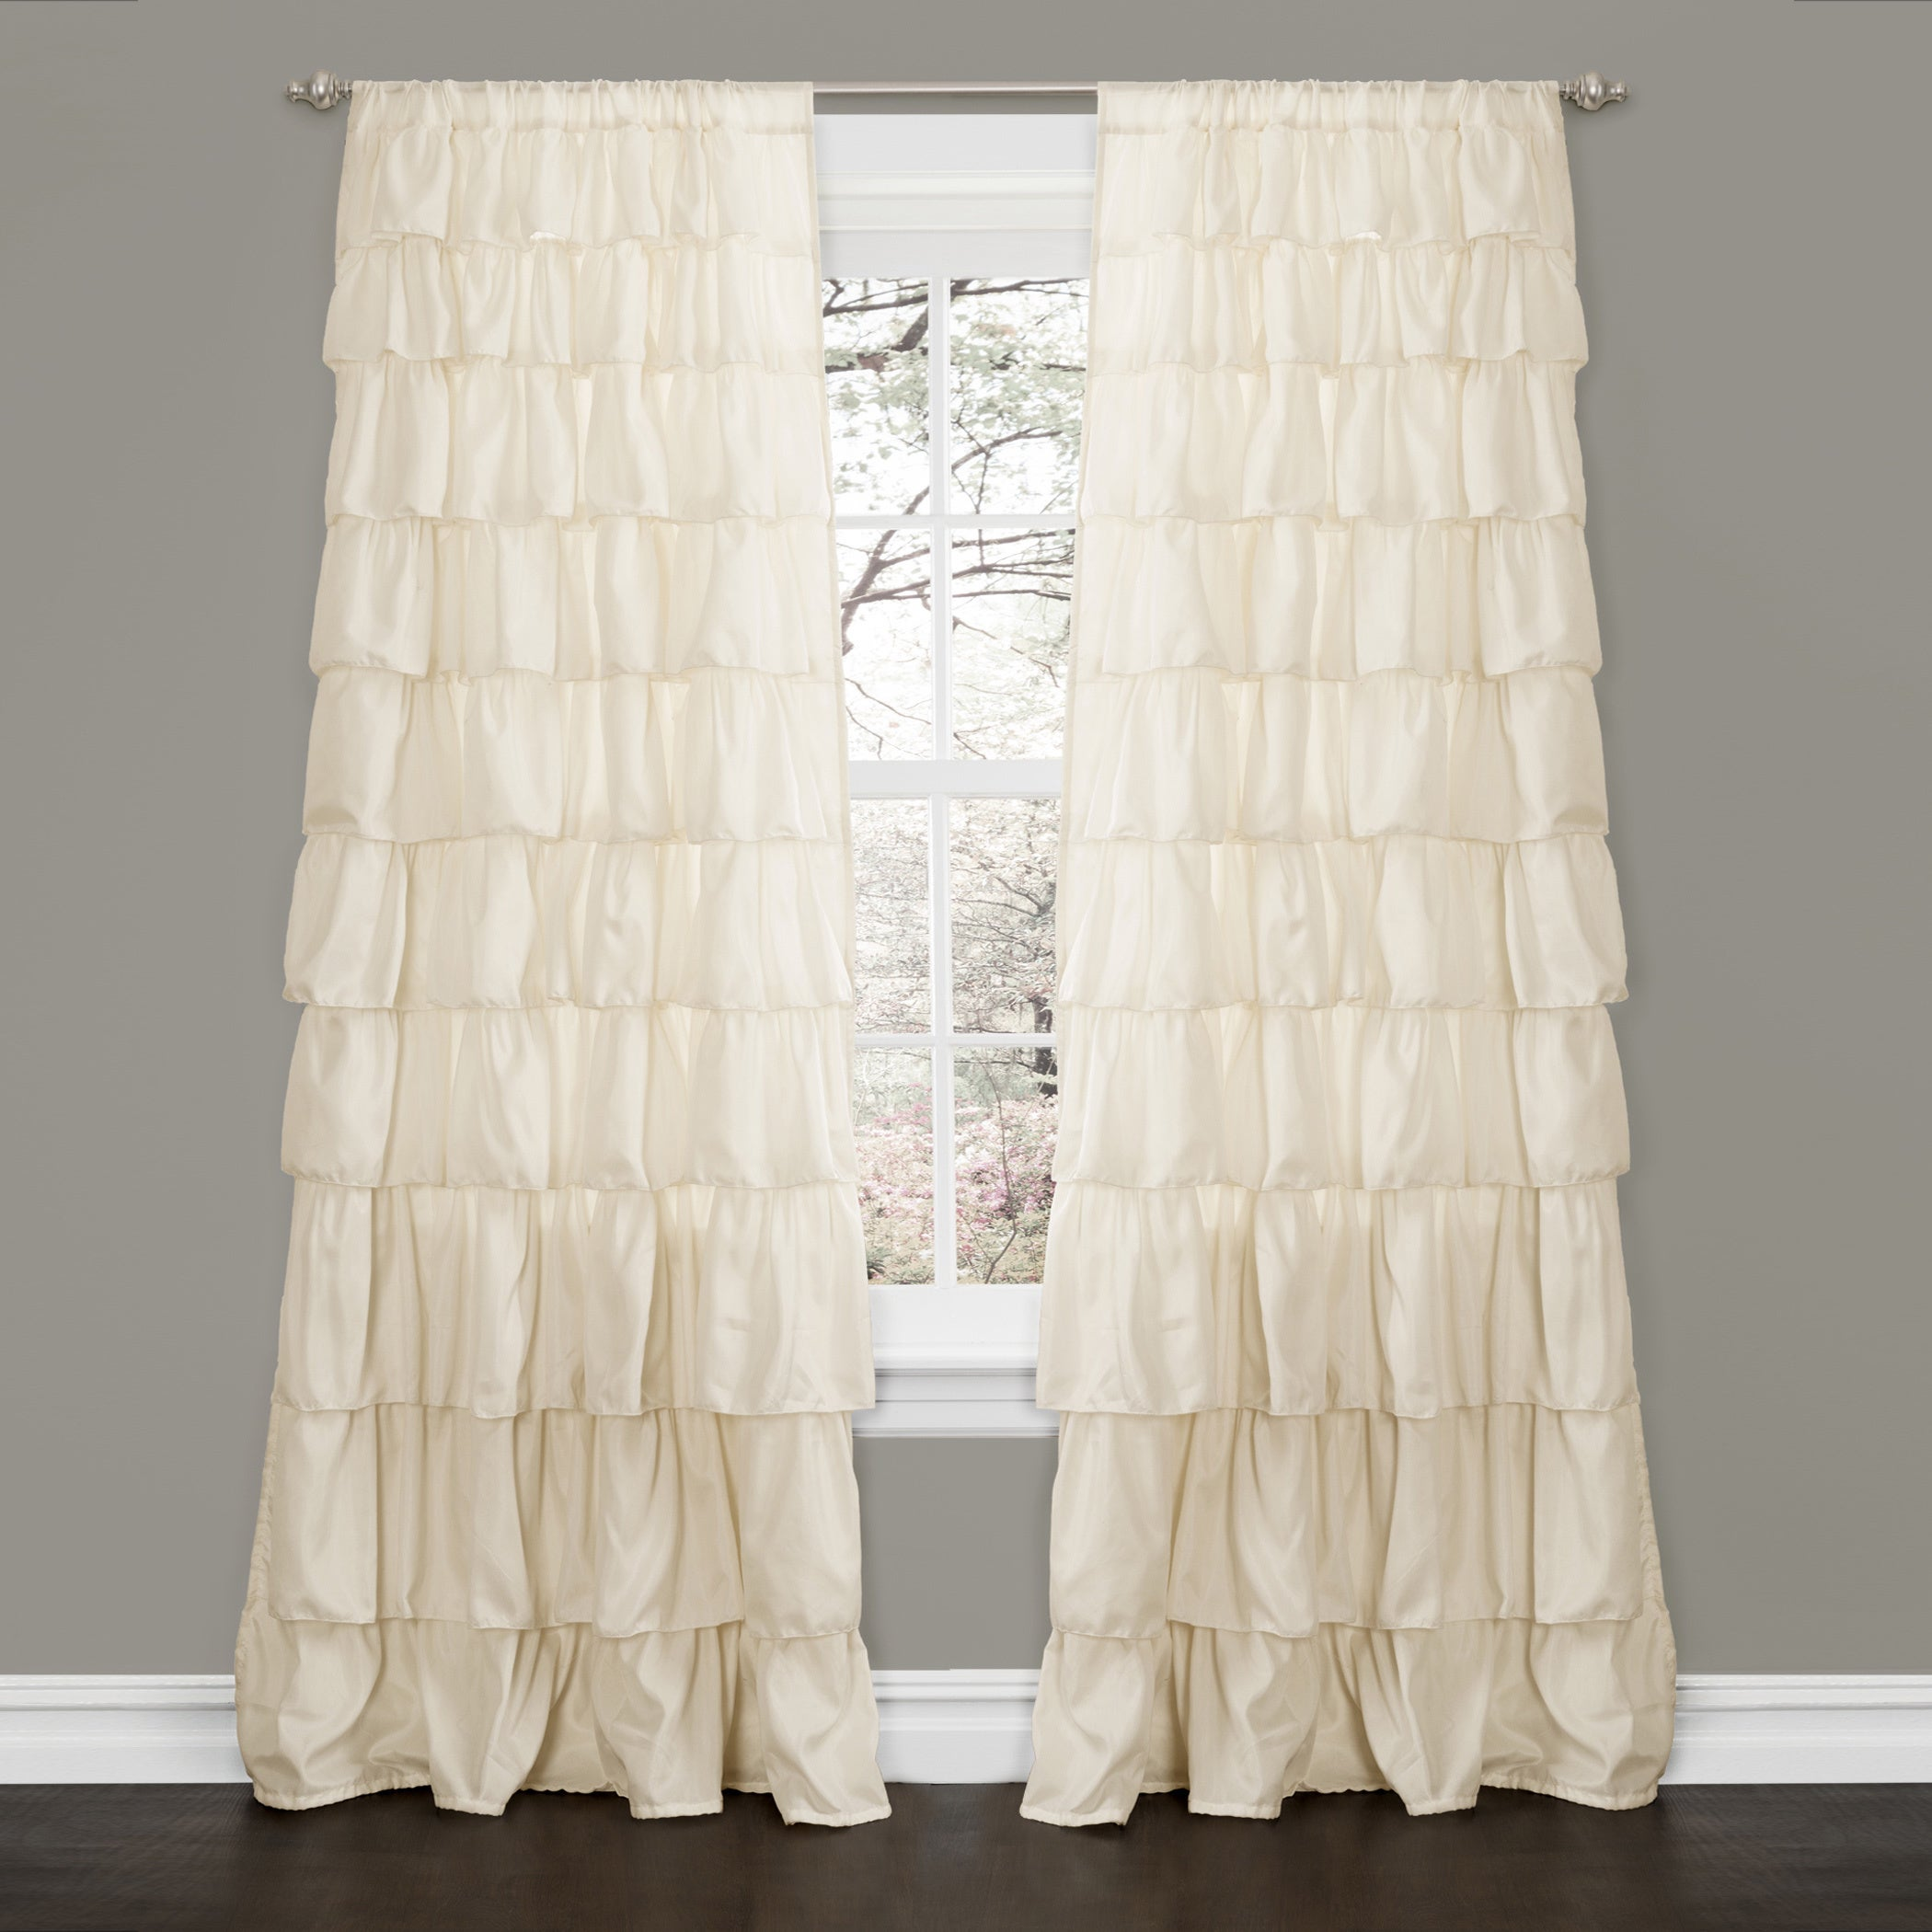 free curtains home ruffle panel park cotton garden product curtain oversized madison joycelyn